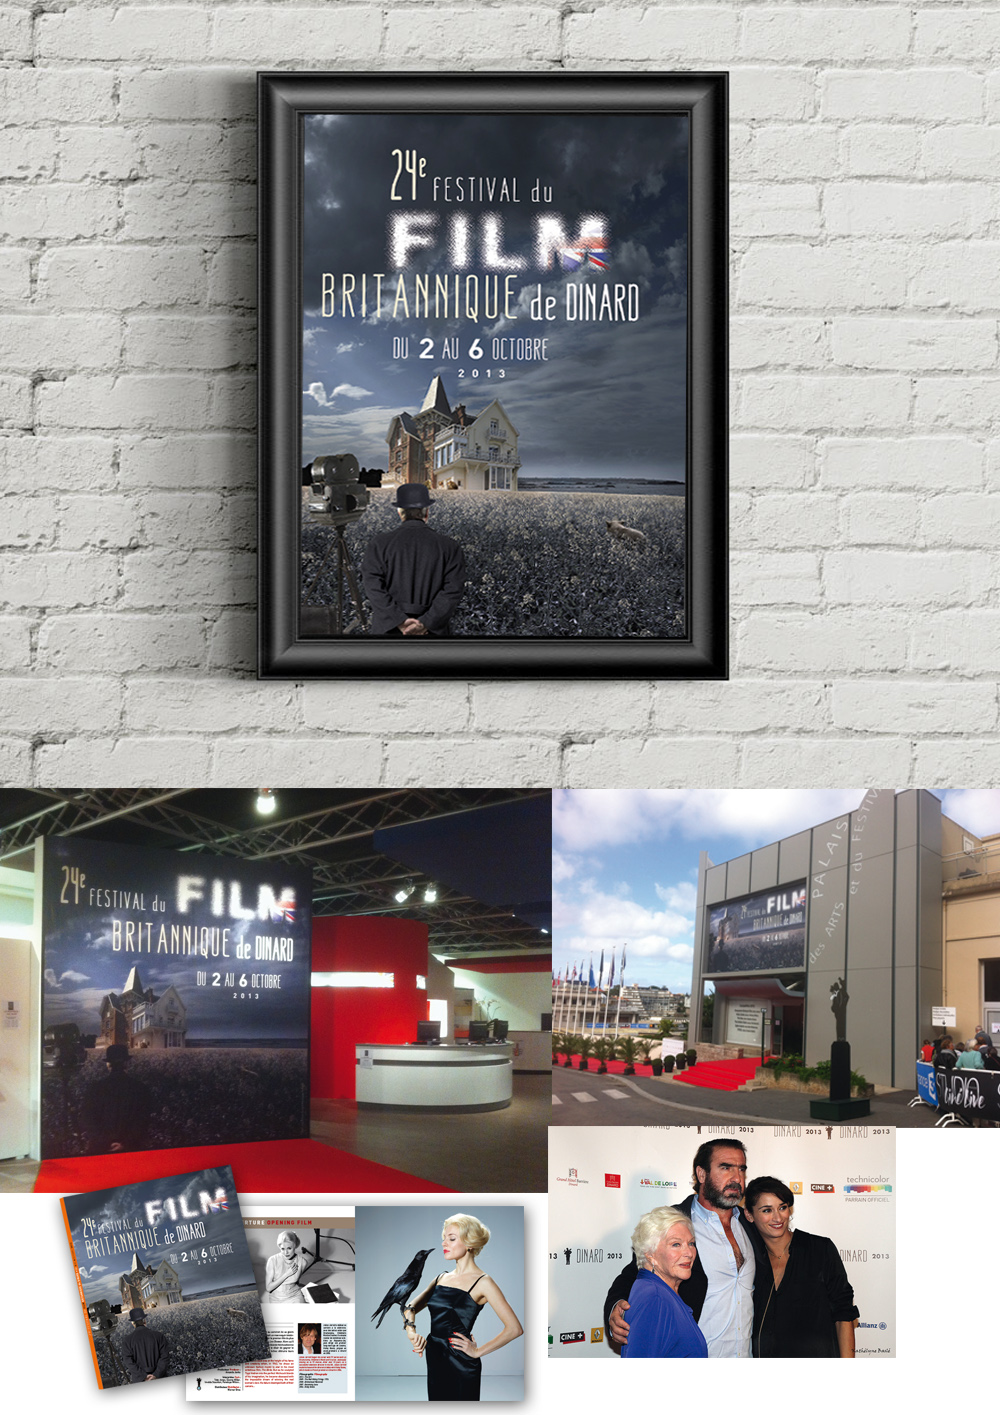 Conception des supports de communication pour le Festival du Films britannique de Dinard (affiche, brochure, invitation, catalogues)